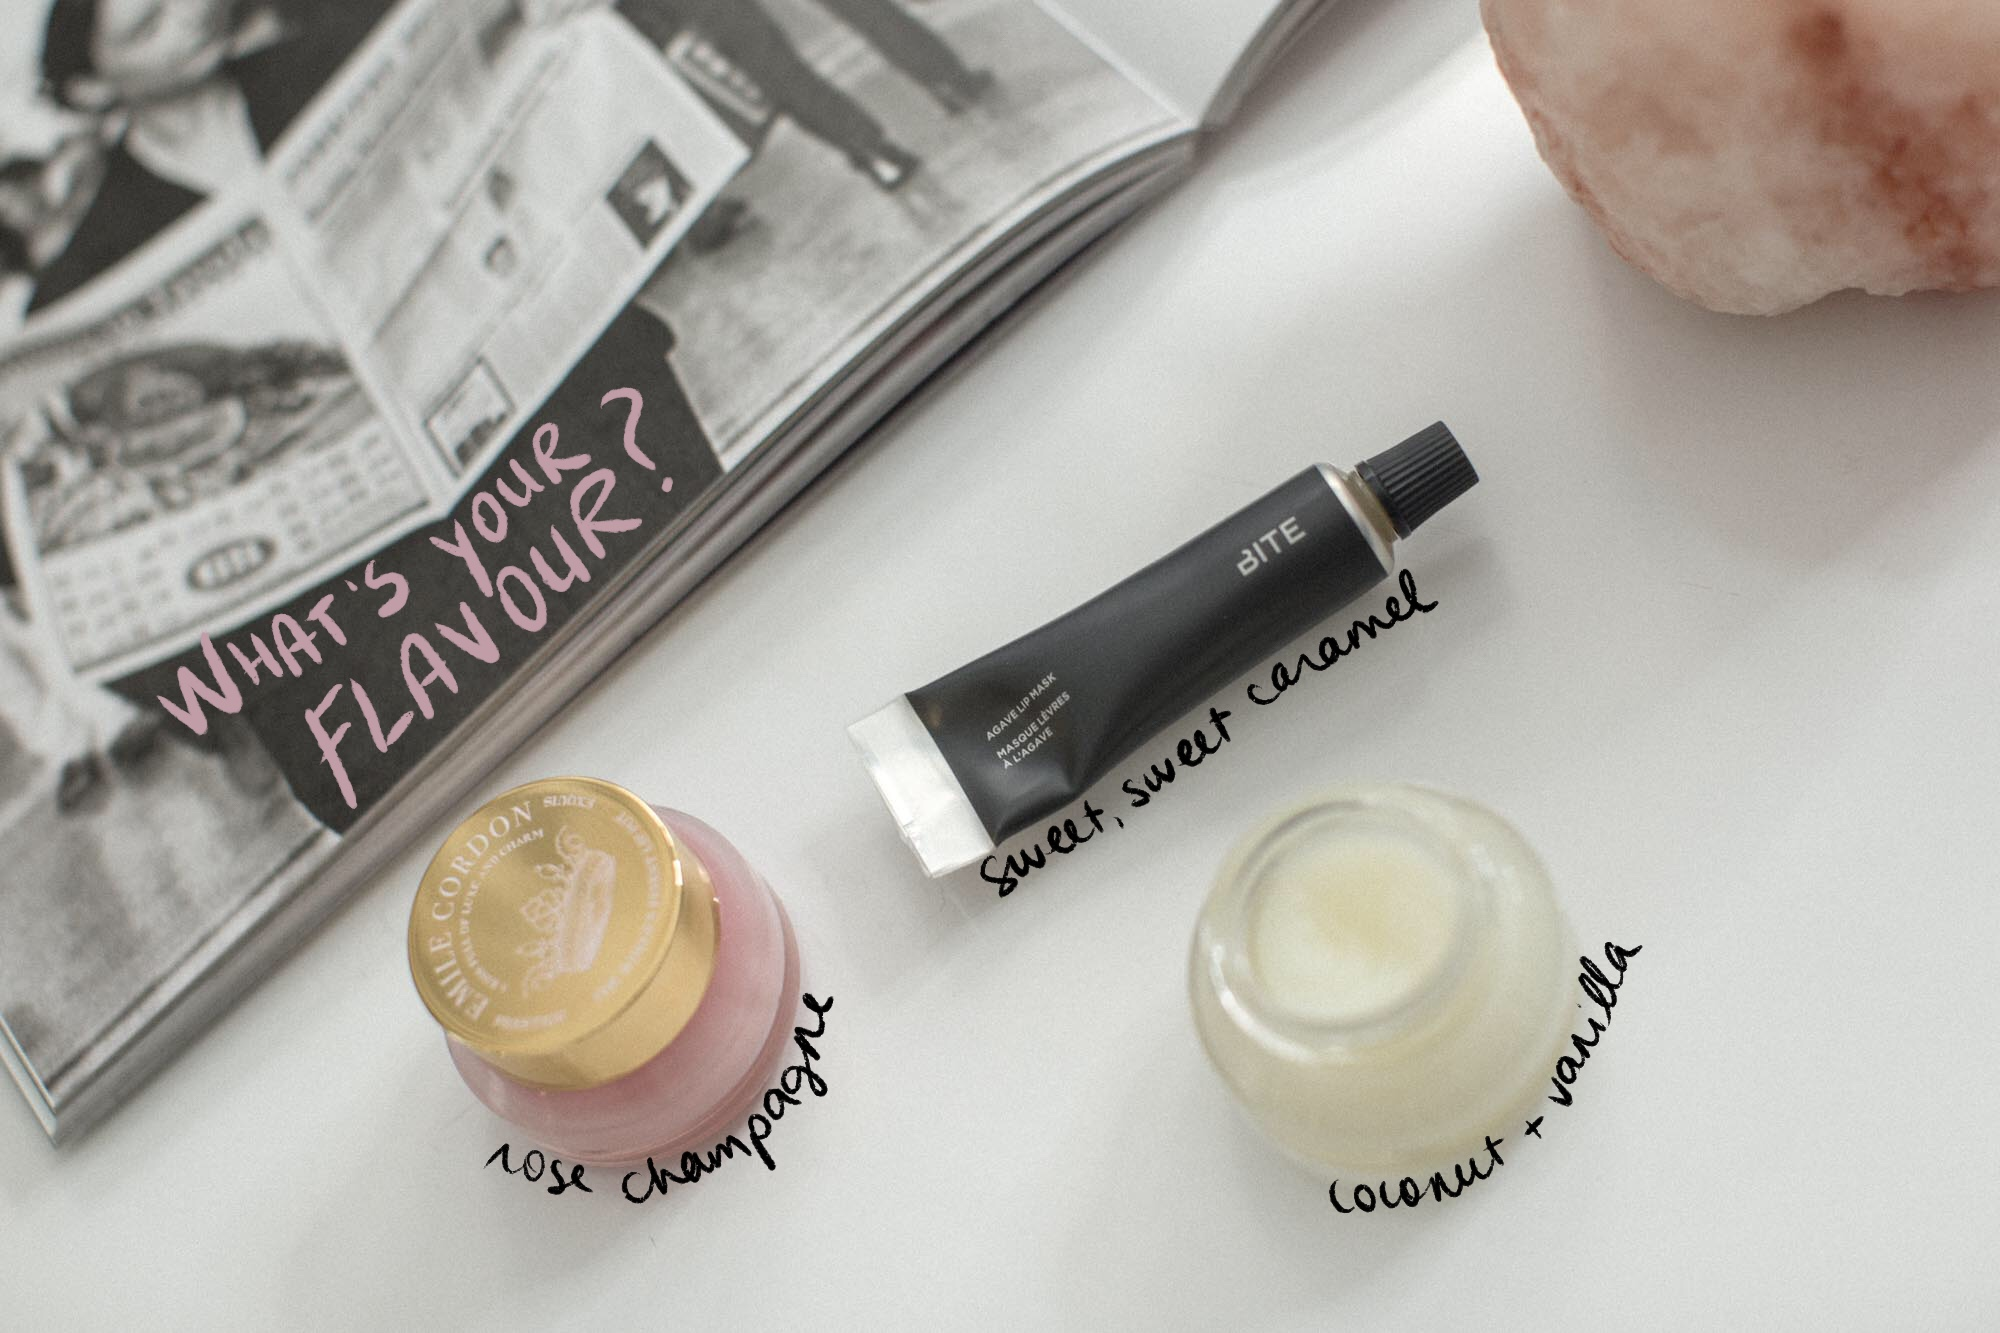 """Emile Cordon Cashmere-On Lip Pots in """"Coco"""" and """"Lisa"""", Bite Beauty Agave Lip Mask"""